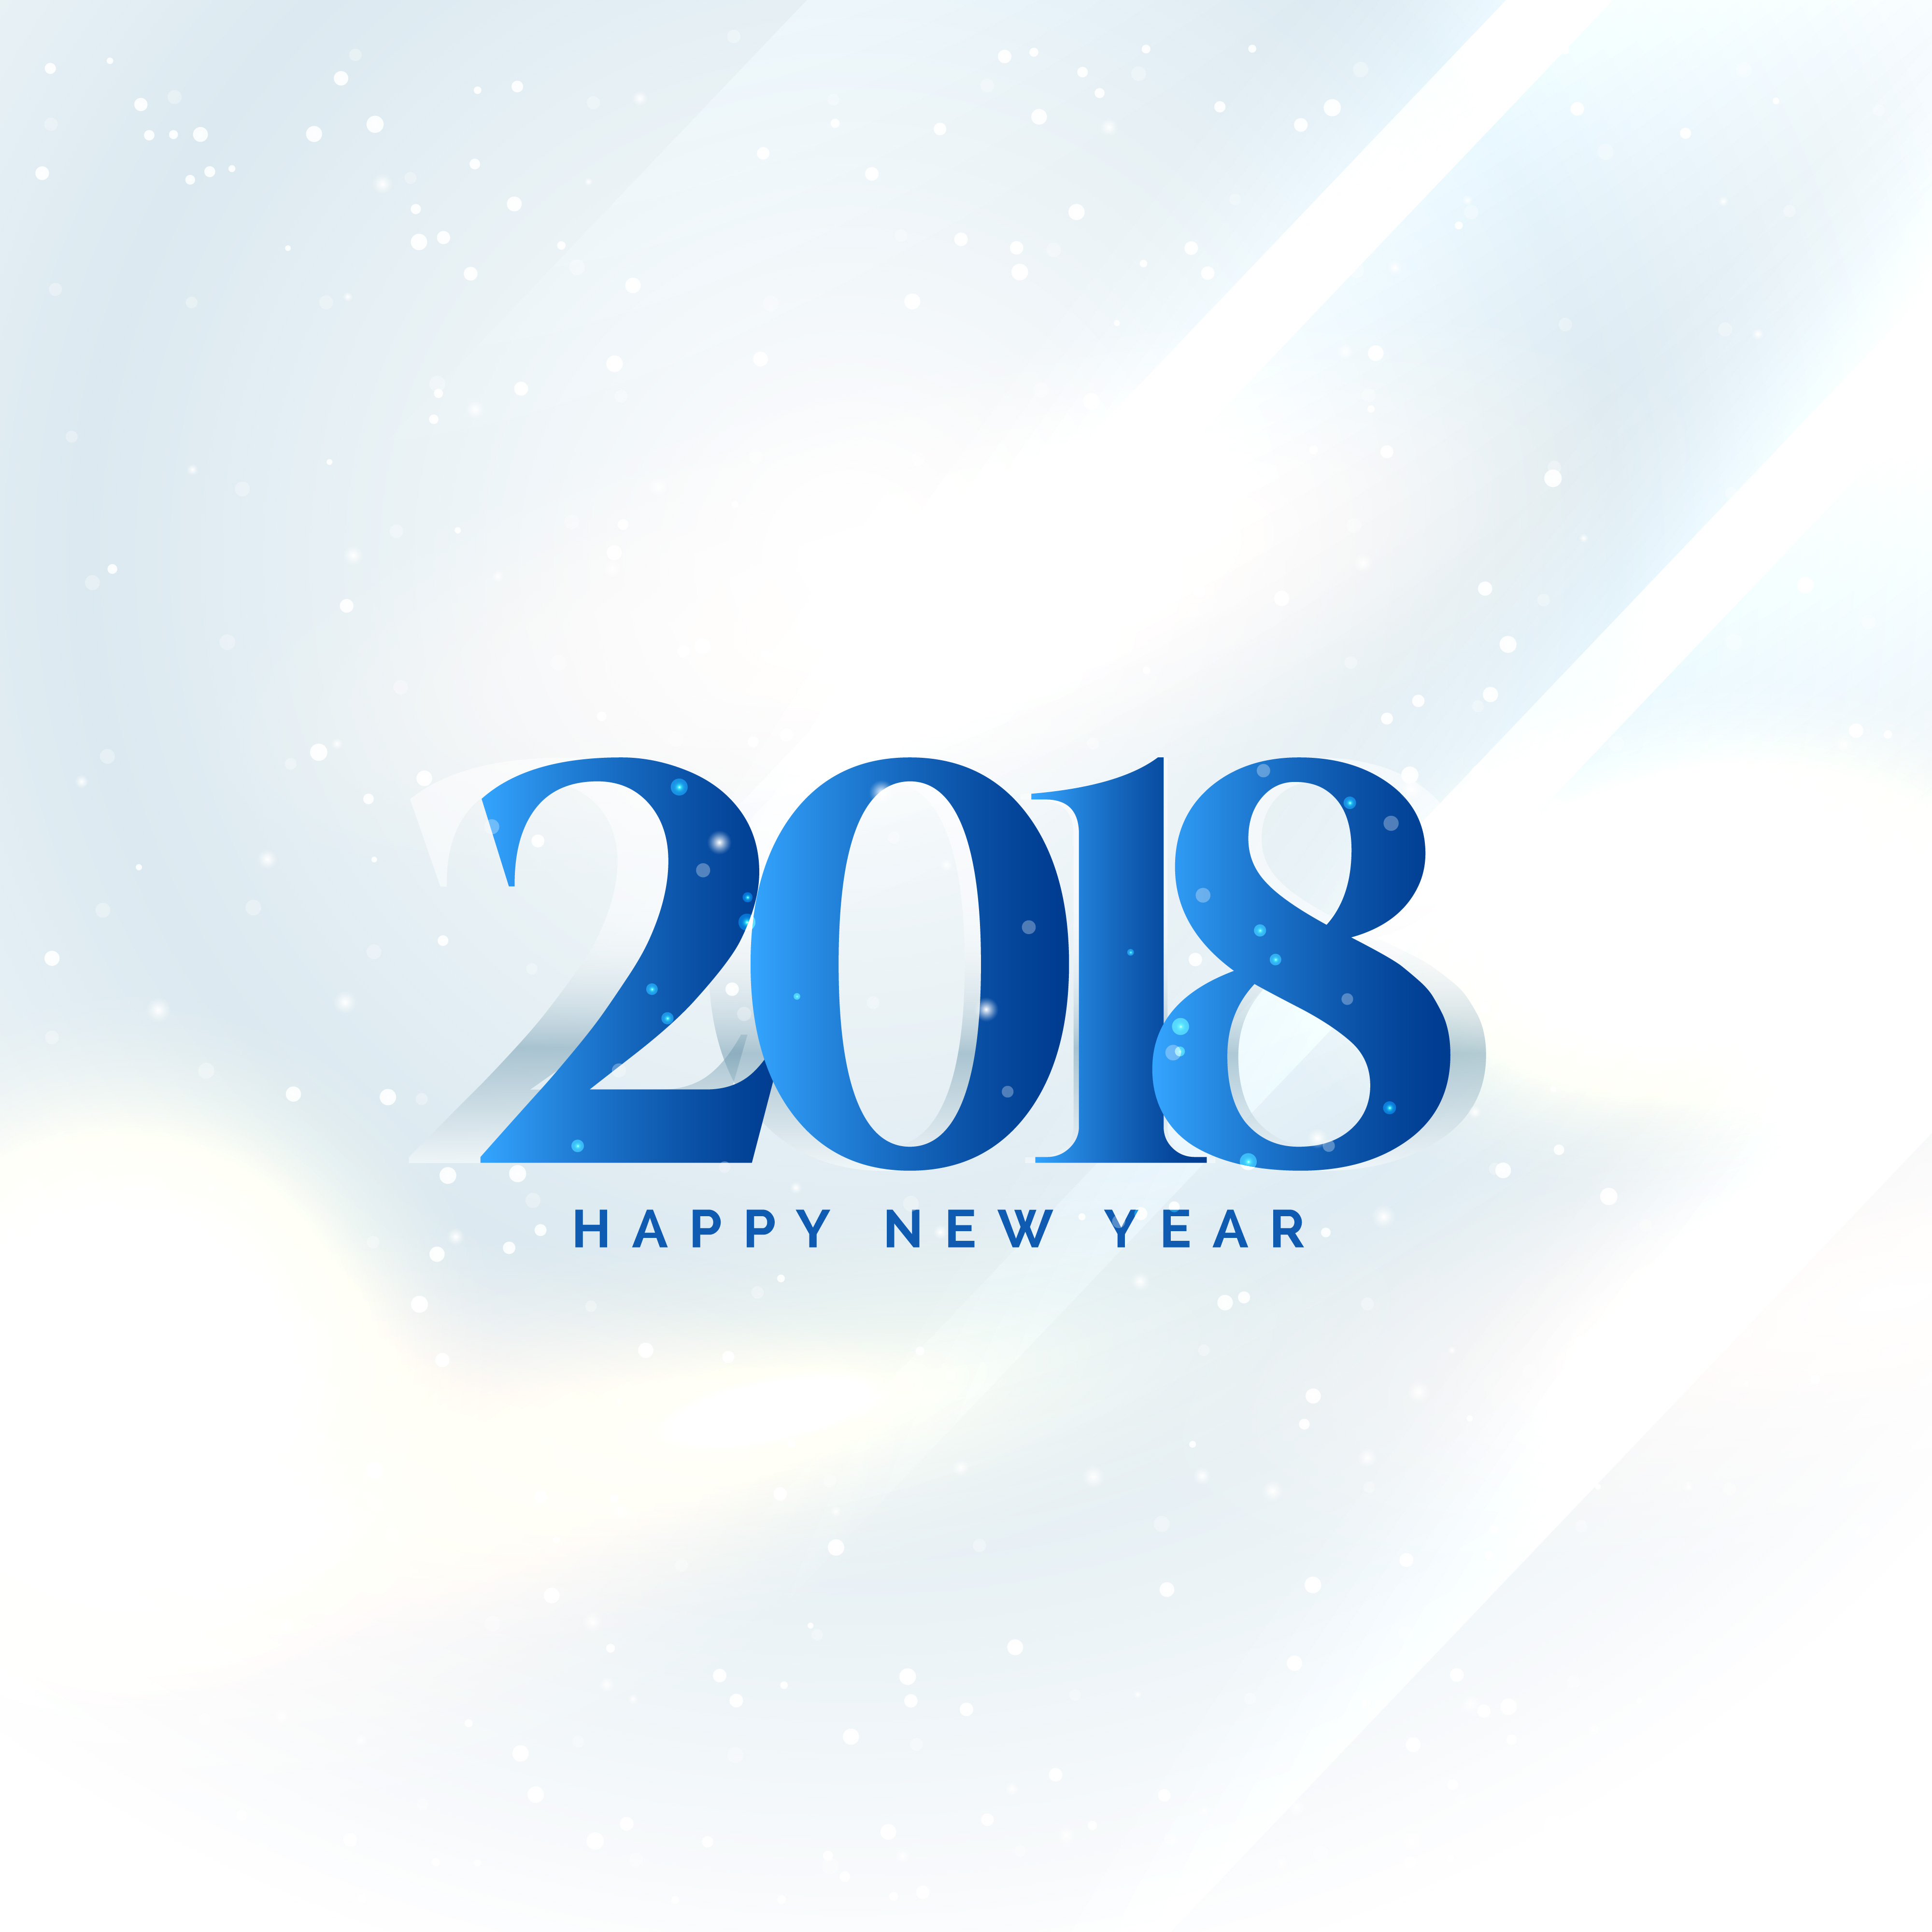 2019: Happy New Year 2018 Text On White Background Design